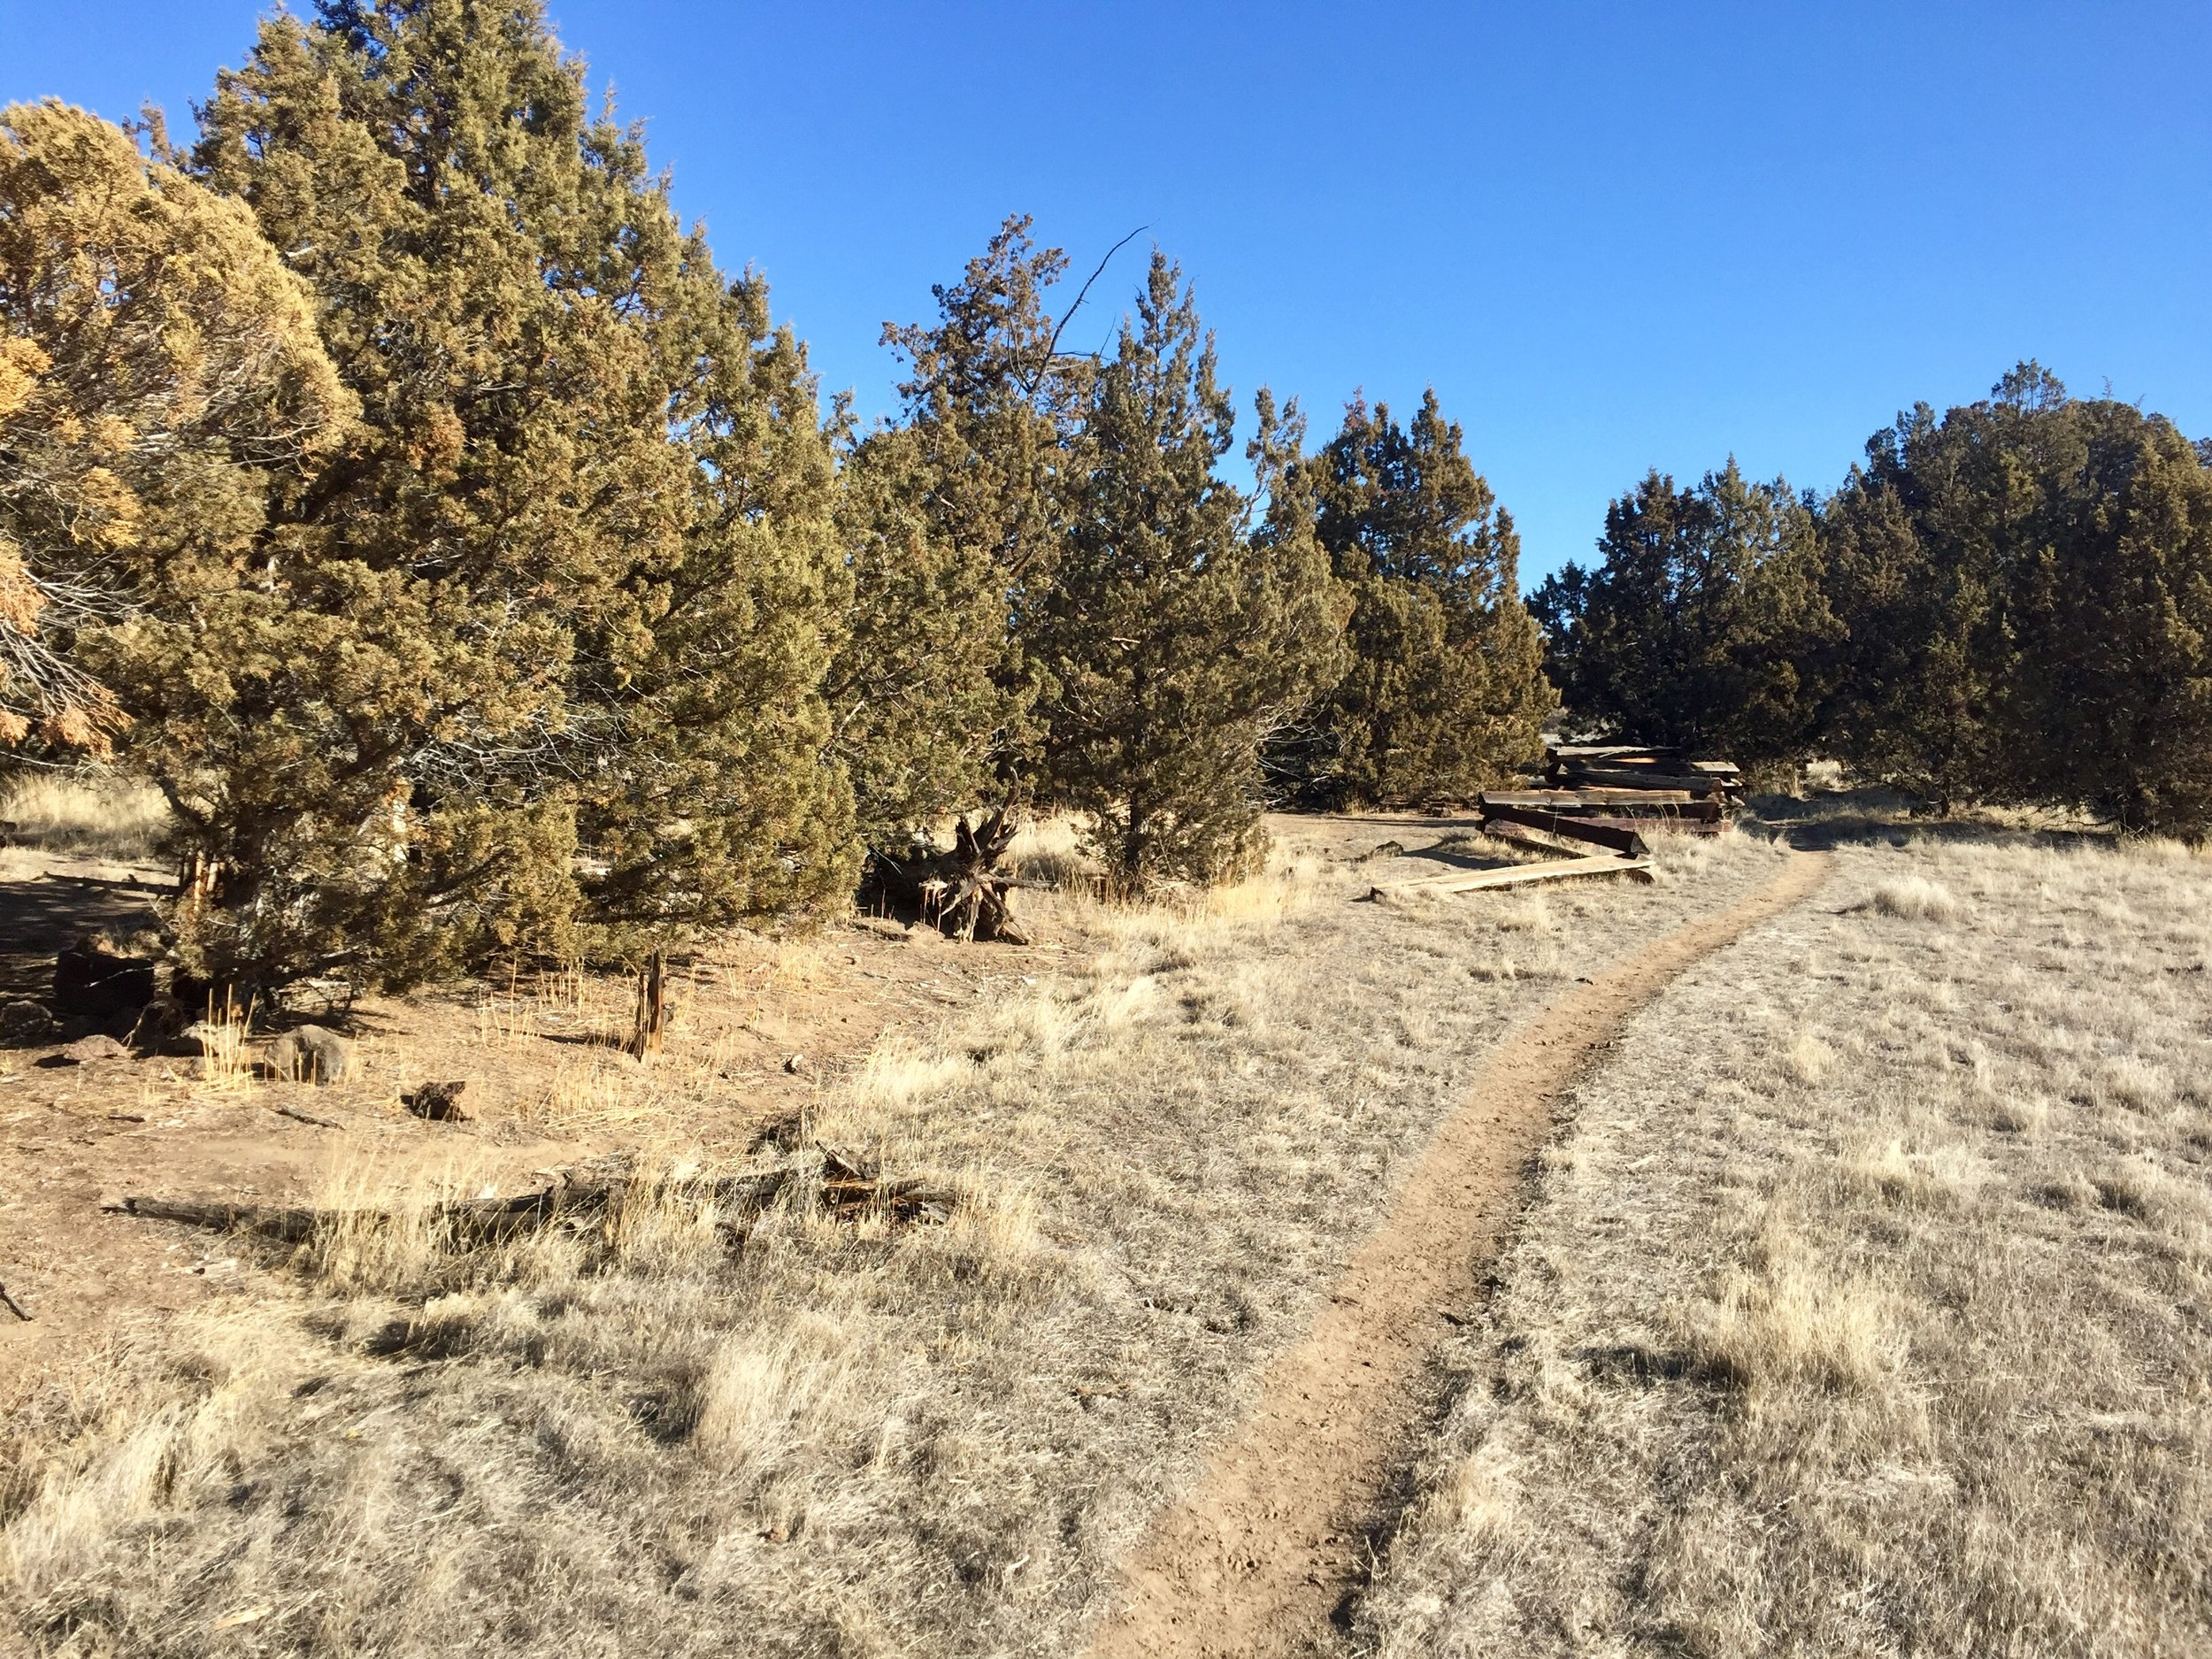 """The extension of the Rim Rock Trail from the South Point Area skirts the rim of the park property and will most likely have a few """"lollipops"""" or viewpoint trails to see the canyon below. Click to enlarge."""